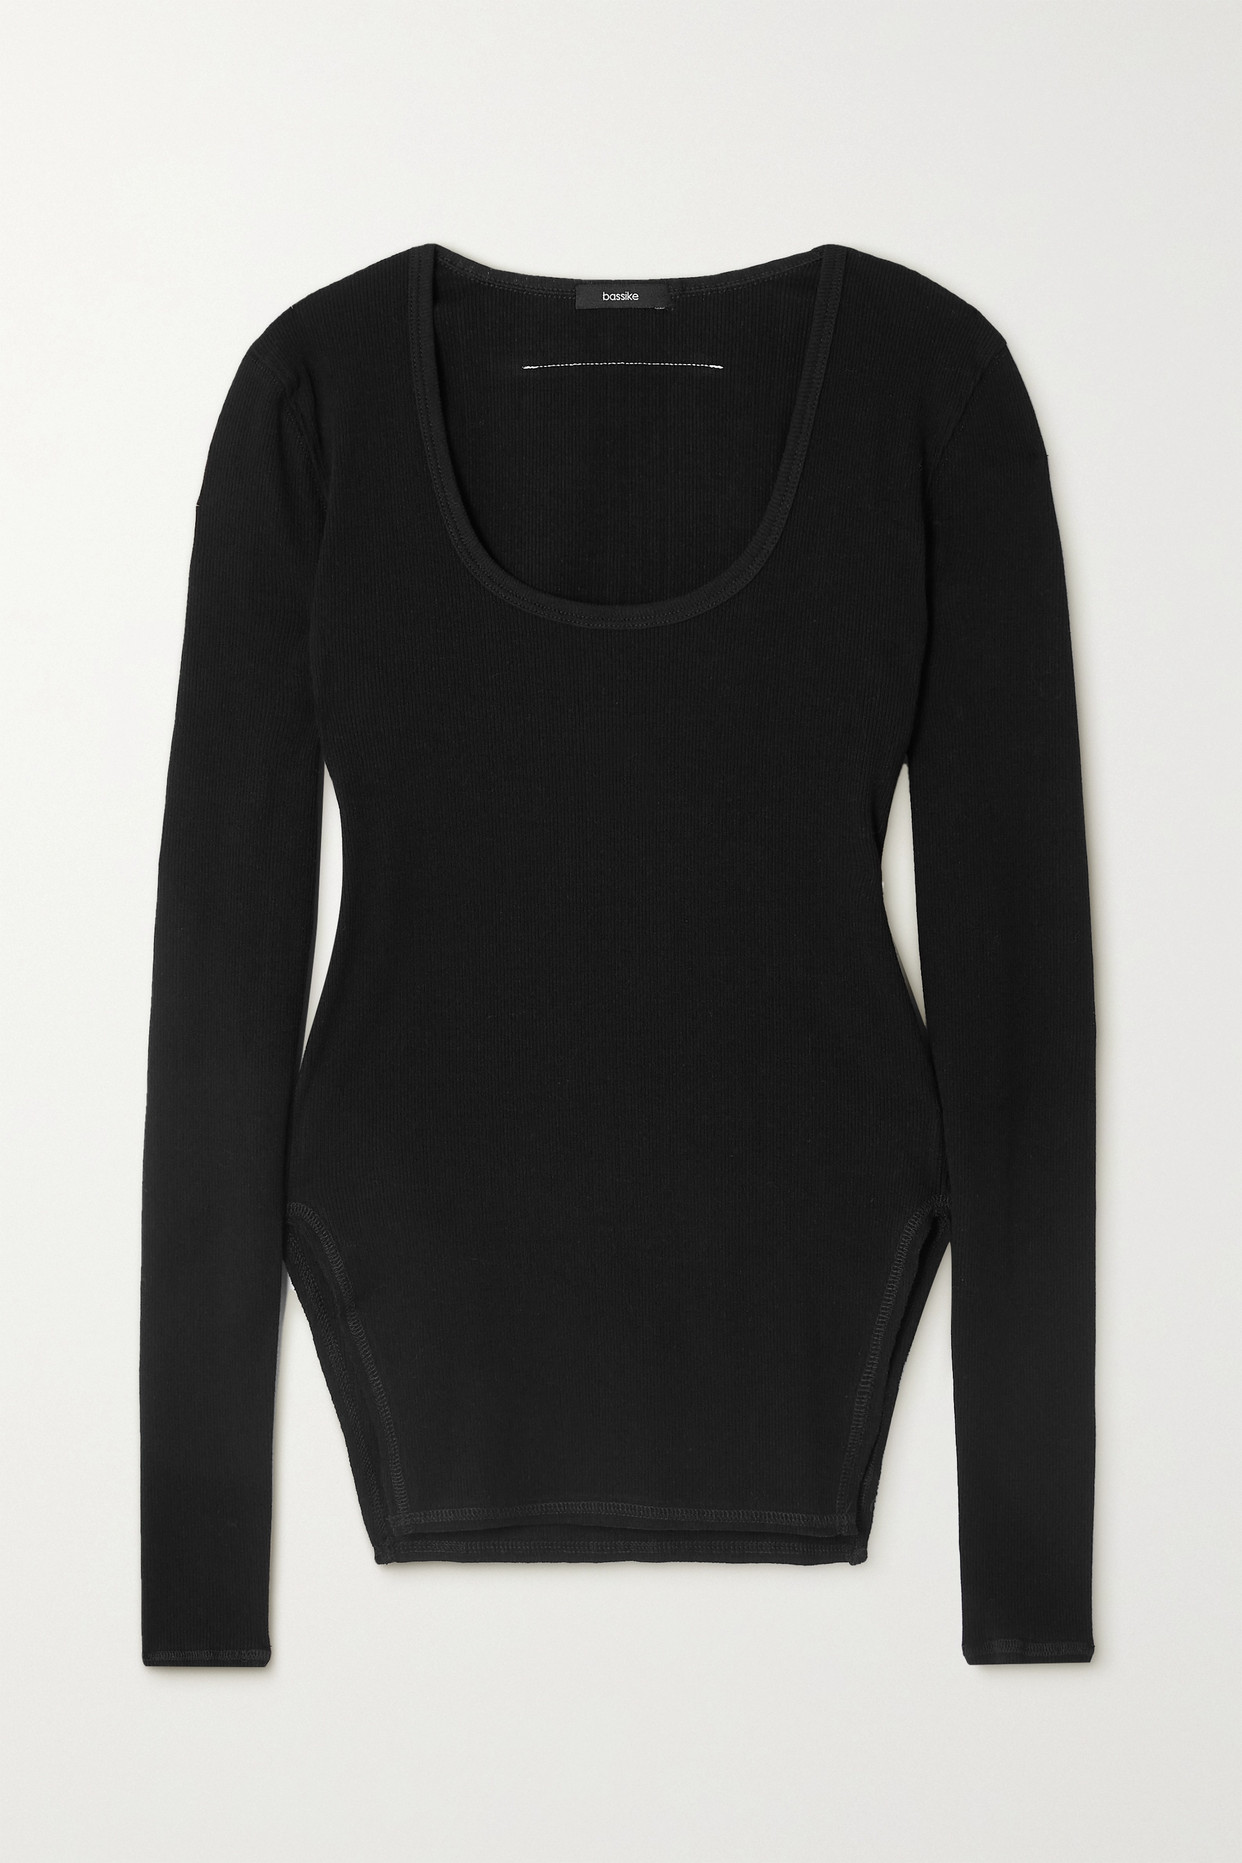 BASSIKE - + Net Sustain Ribbed Stretch-cotton Top - Black - 2